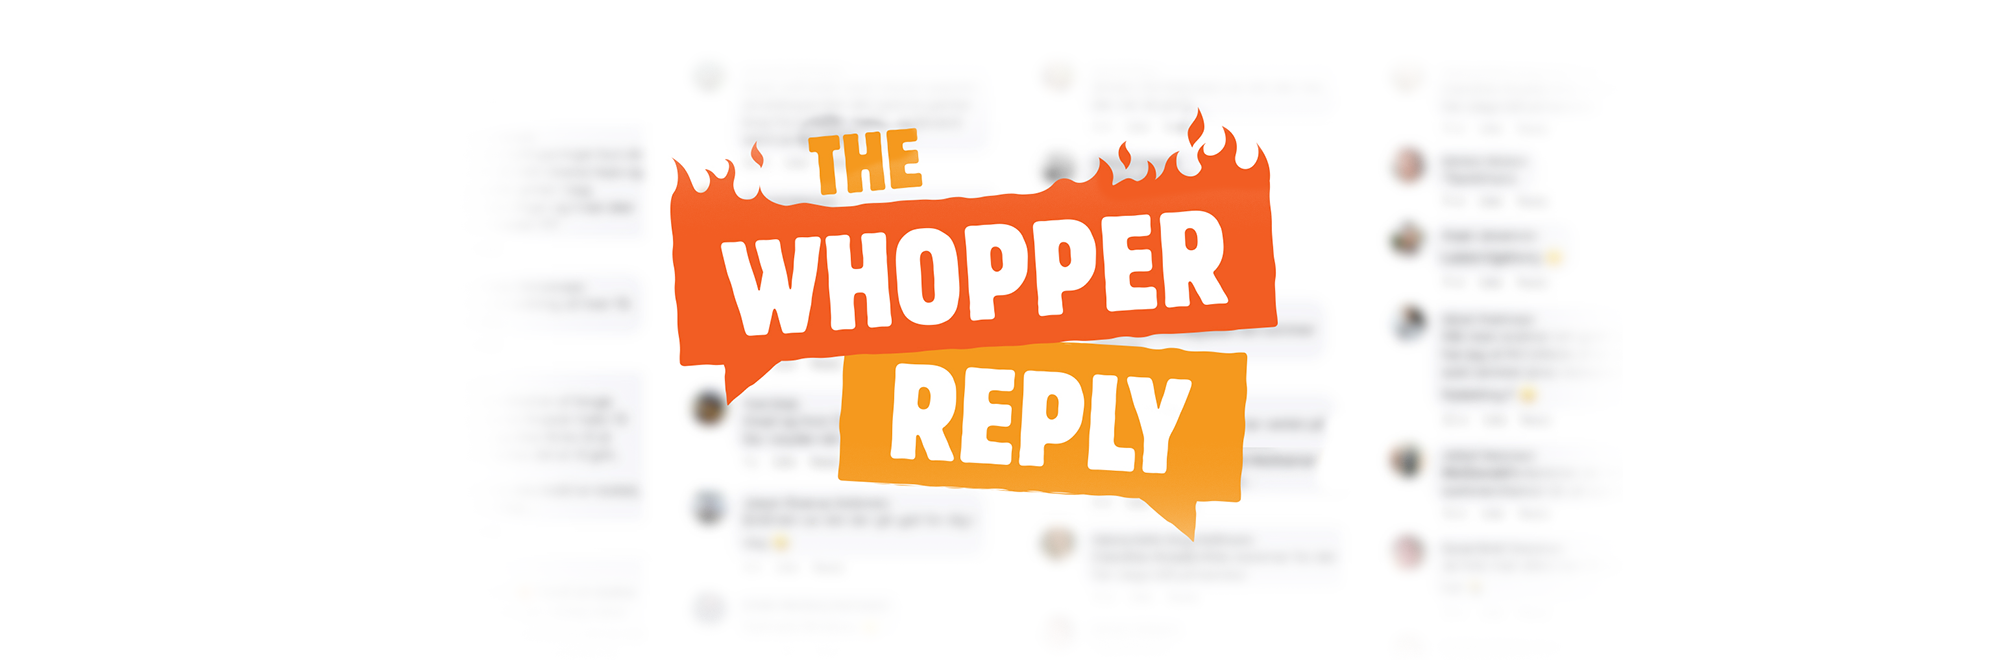 Waiting for a reply from McDonalds? Burger King has the answer.